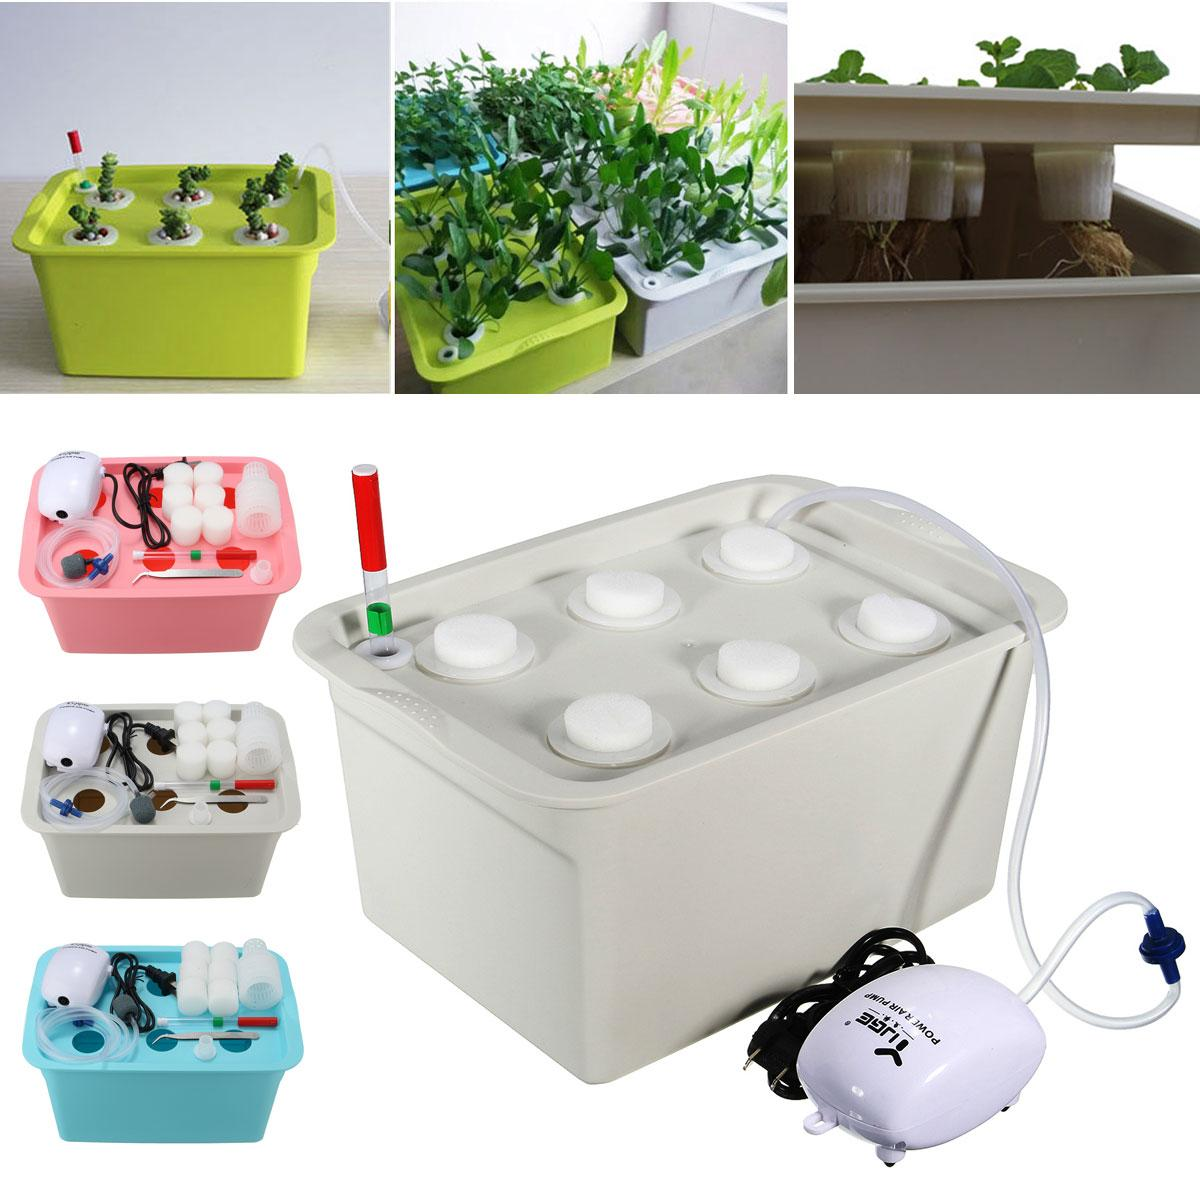 Plant Site Hydroponic Systems Kit 6 Holes Nursery Pots Soilless Cultivation Box Plants Seedling Grow Boxes Kits 220V/110V